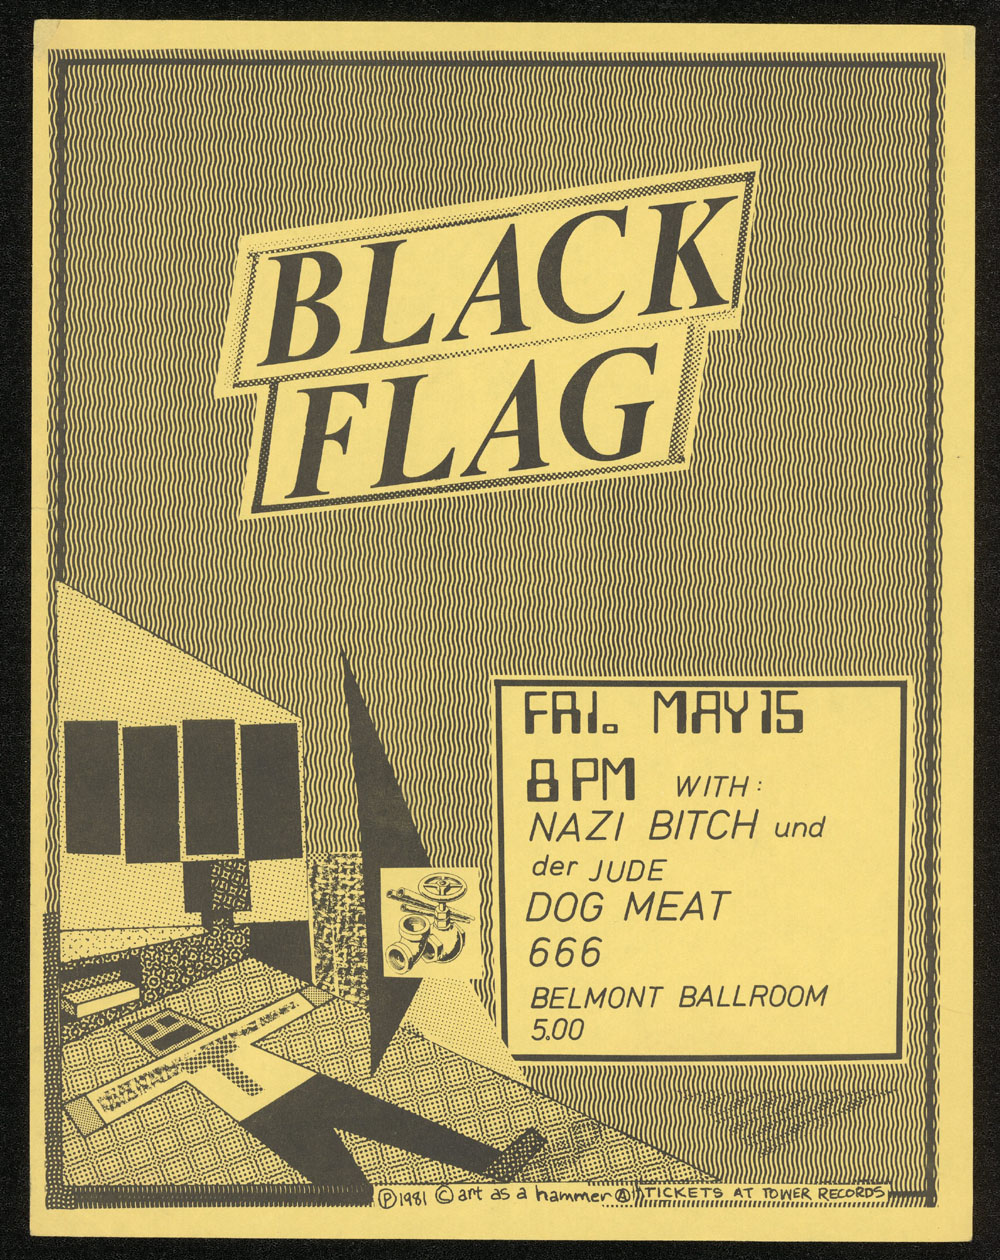 BLACK FLAG w/ Nazi Bitch, Dog Meat at Belmont Ballroom